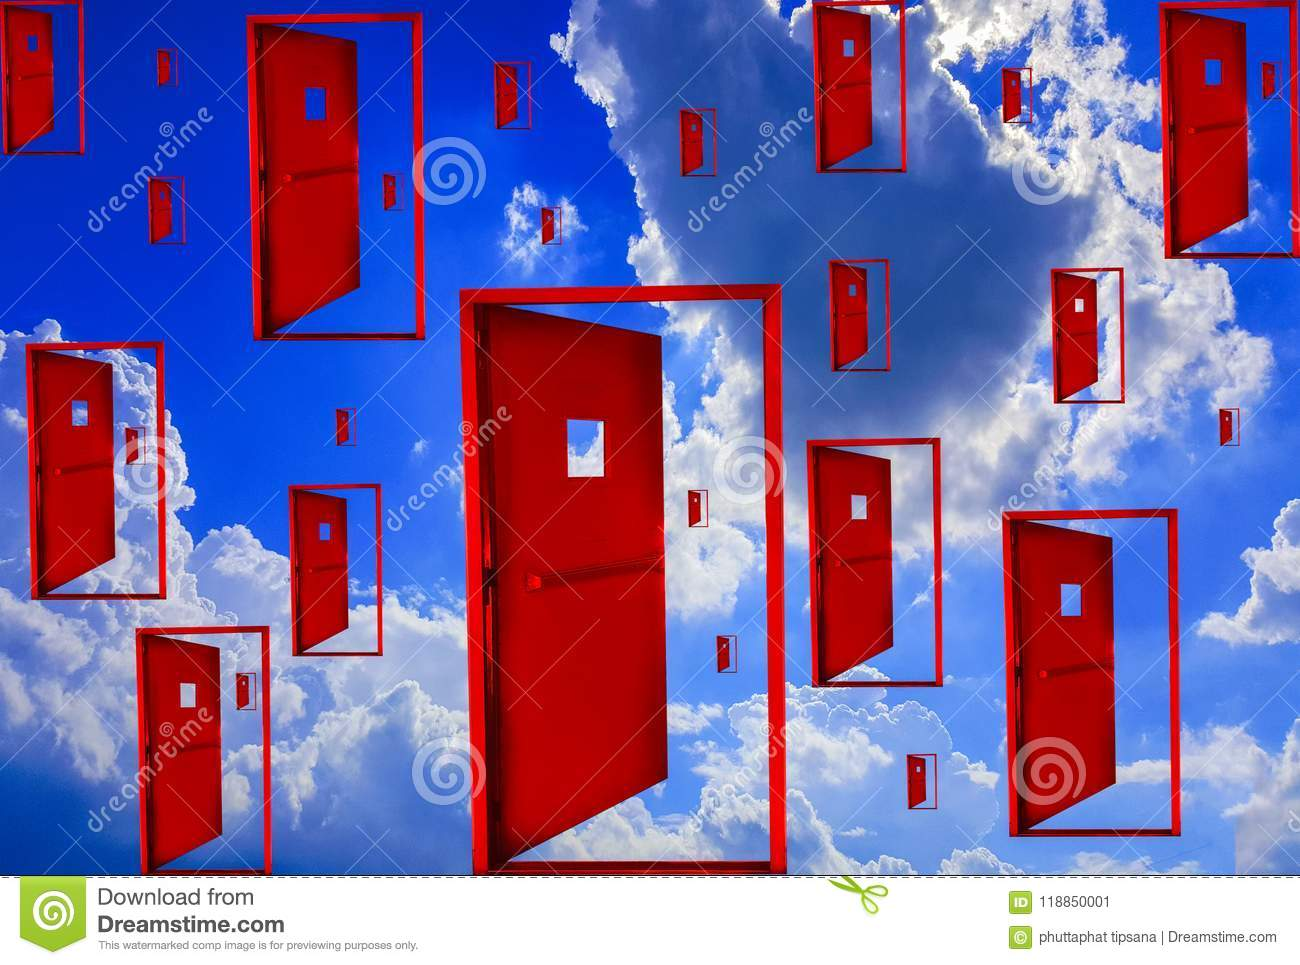 Red Door Floating In The Air